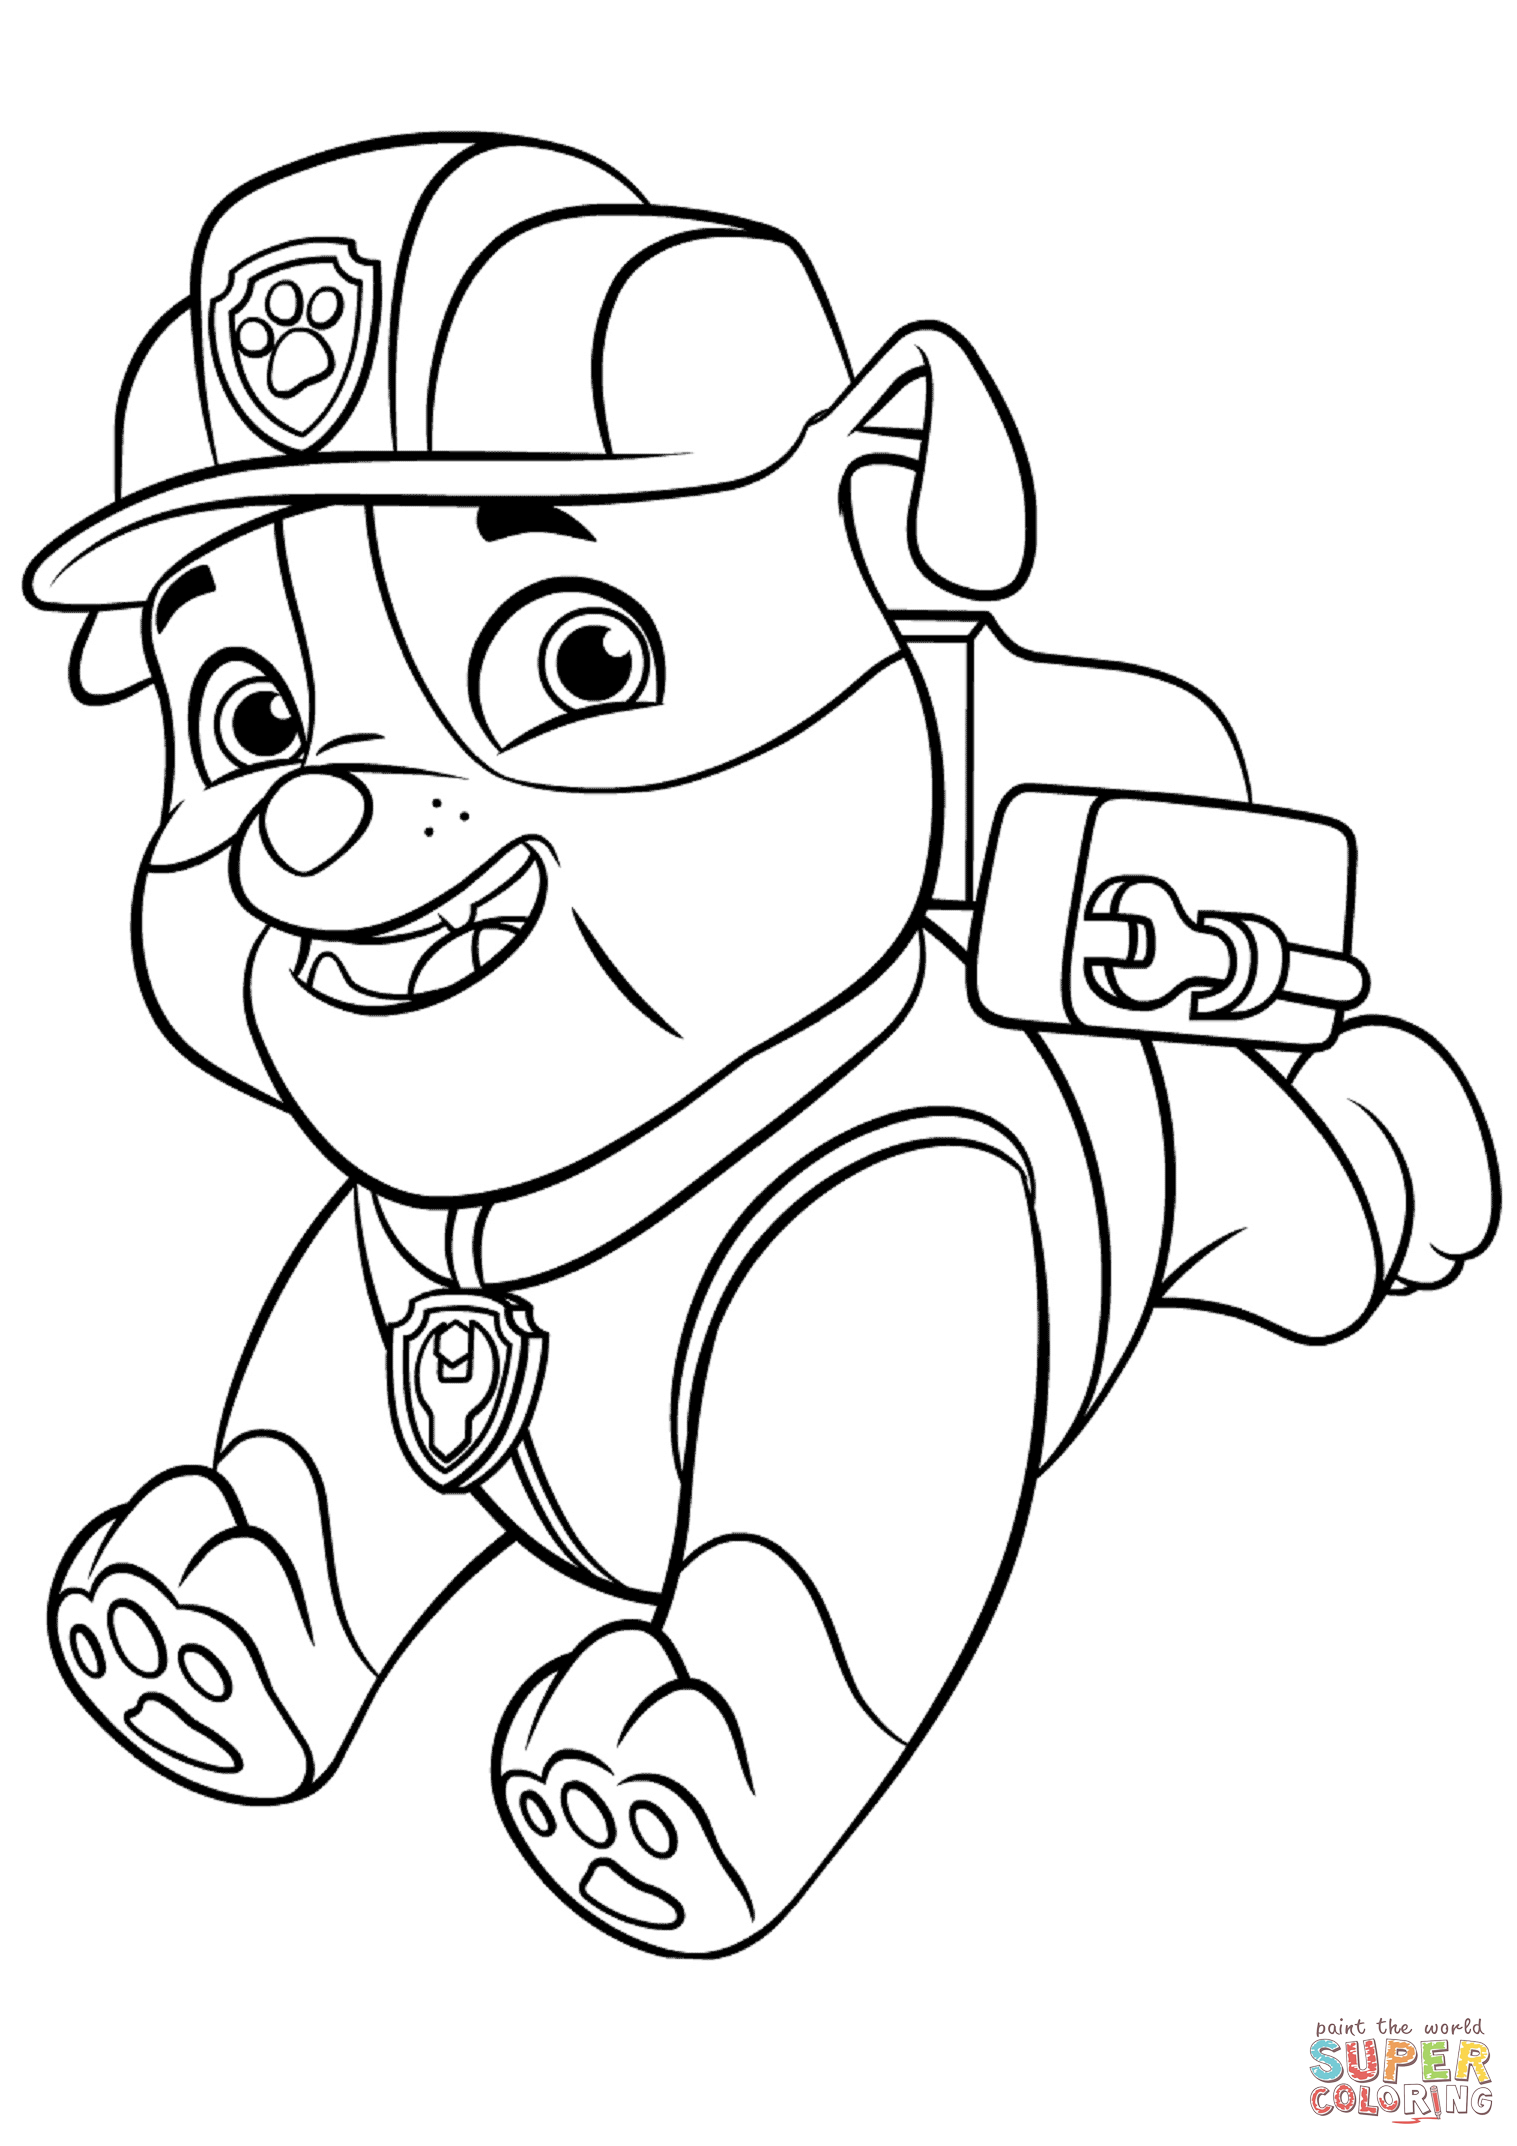 Paw Patrol Rubble With Backpack Super Coloring Paw Patrol Coloring Pages Paw Patrol Coloring Rubble Paw Patrol